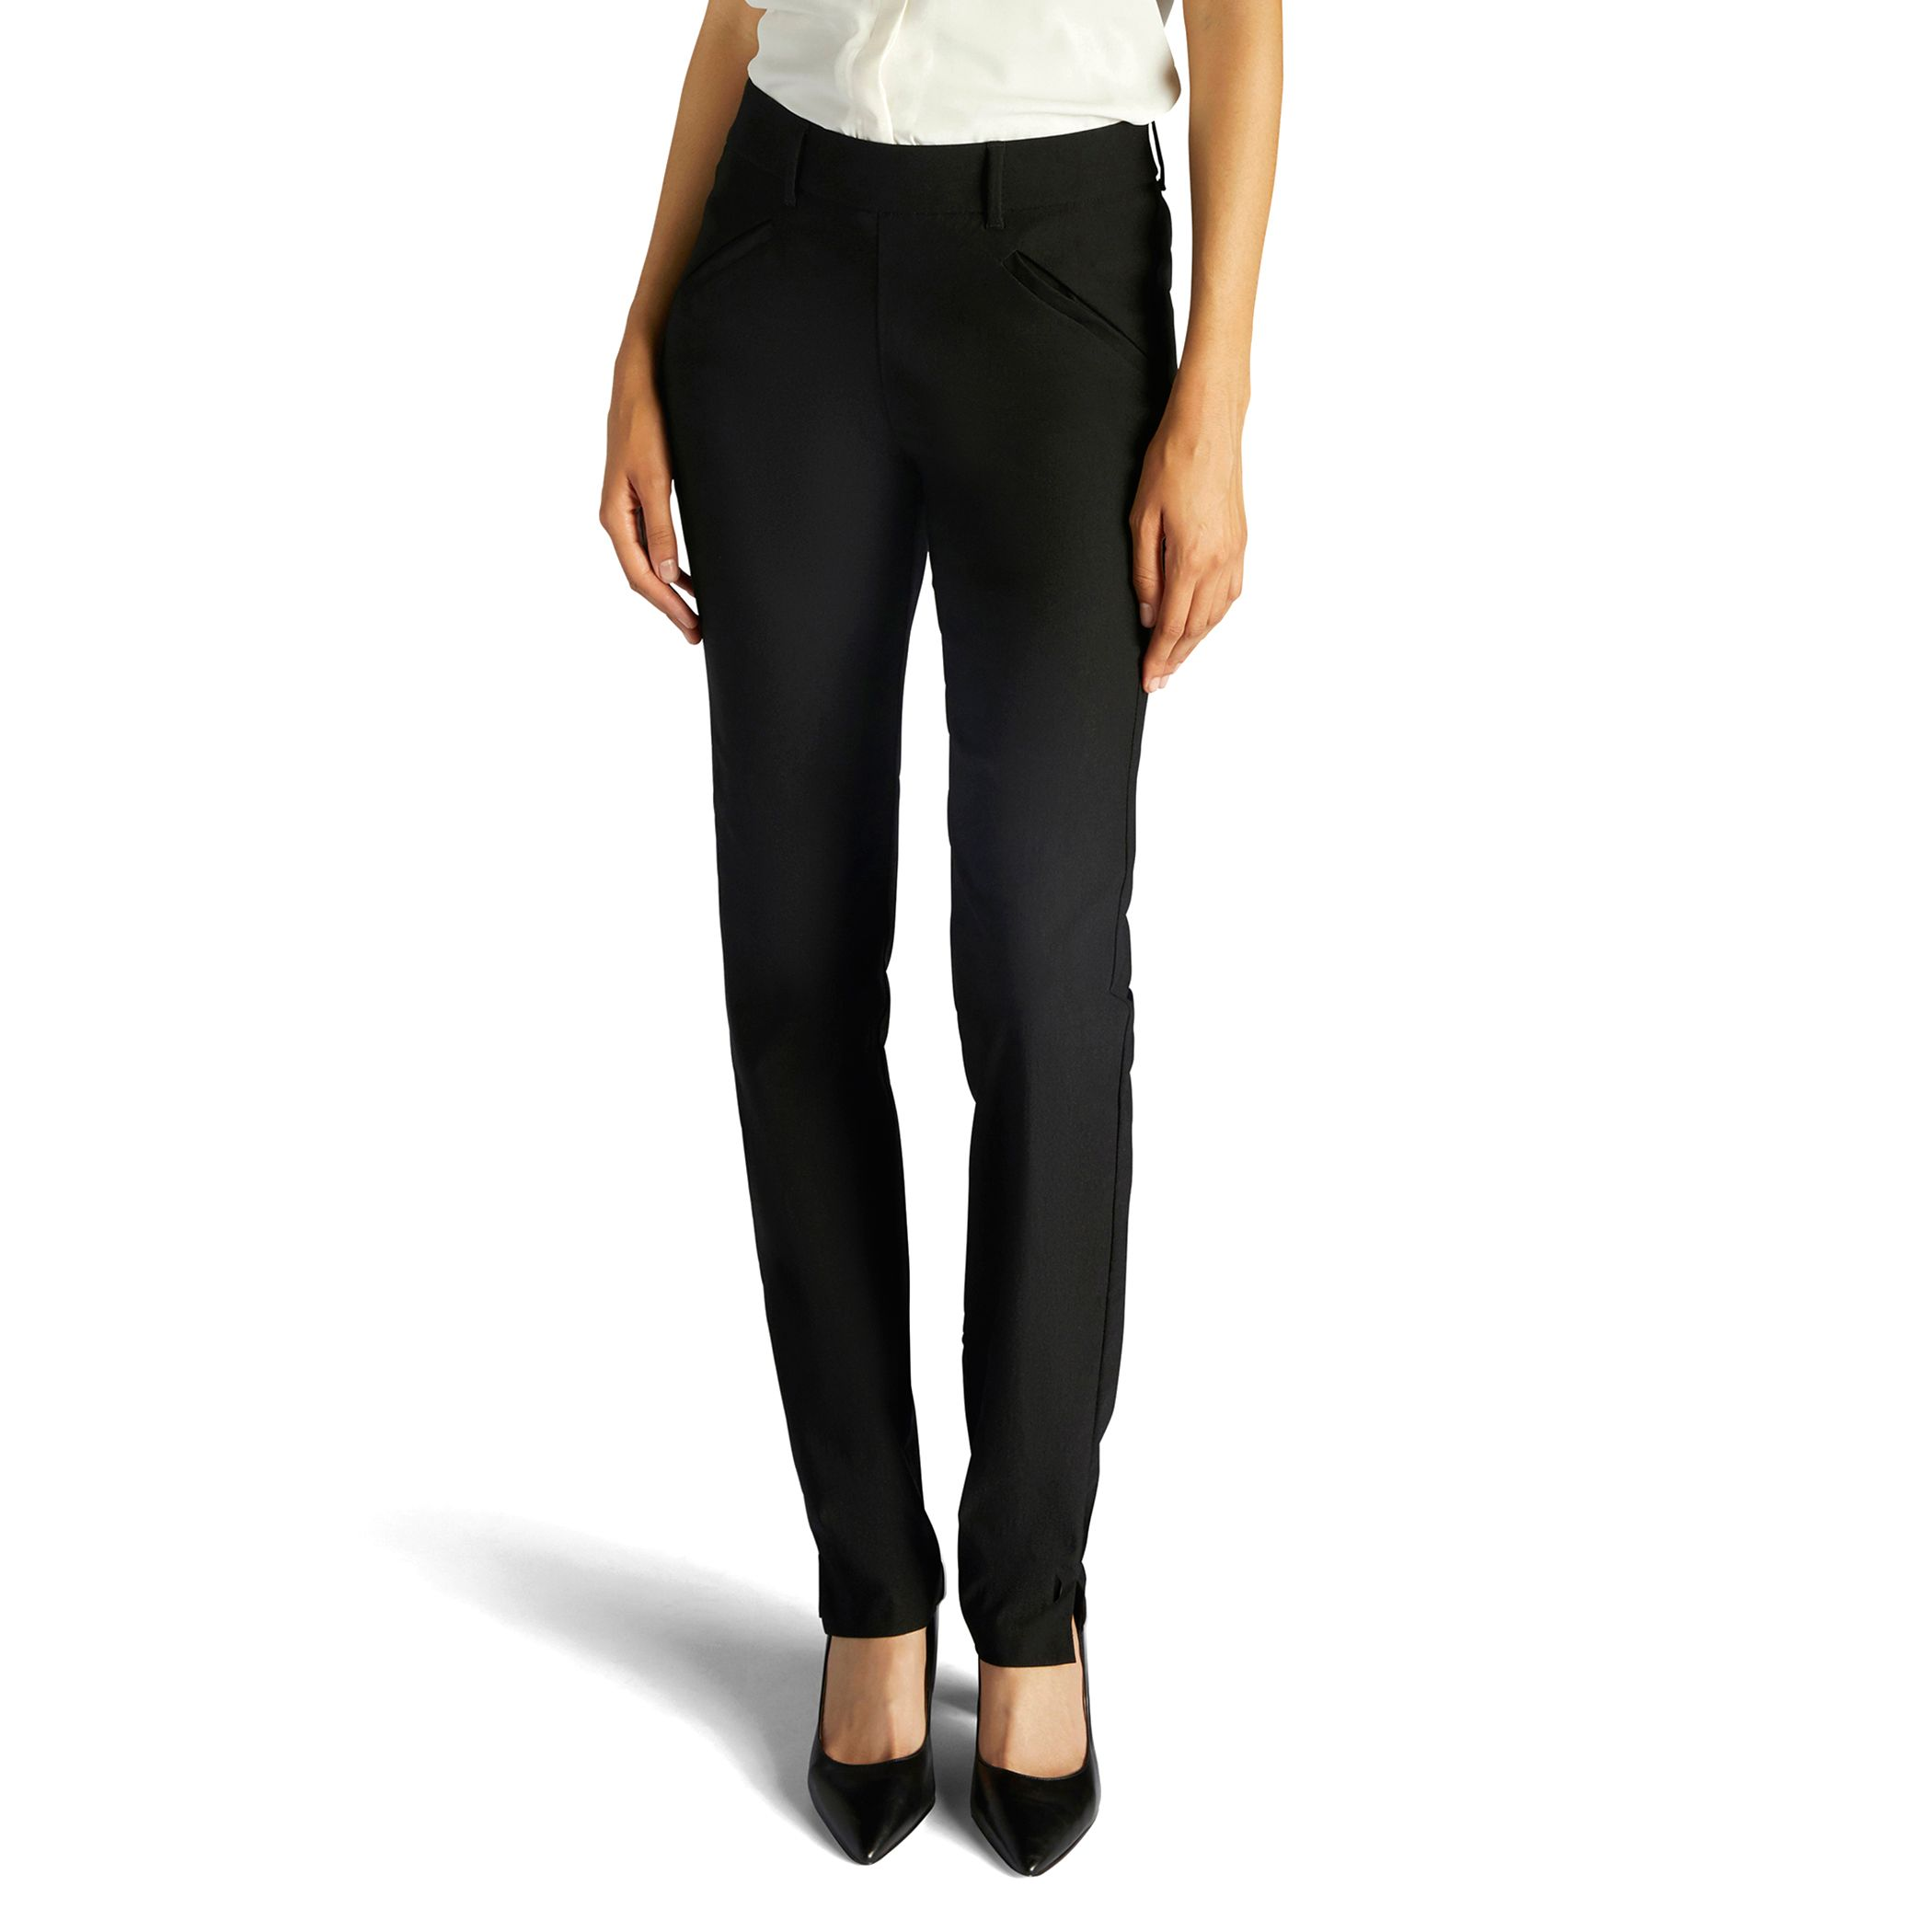 Skinny Dress Pants For Women MEo7pmsT